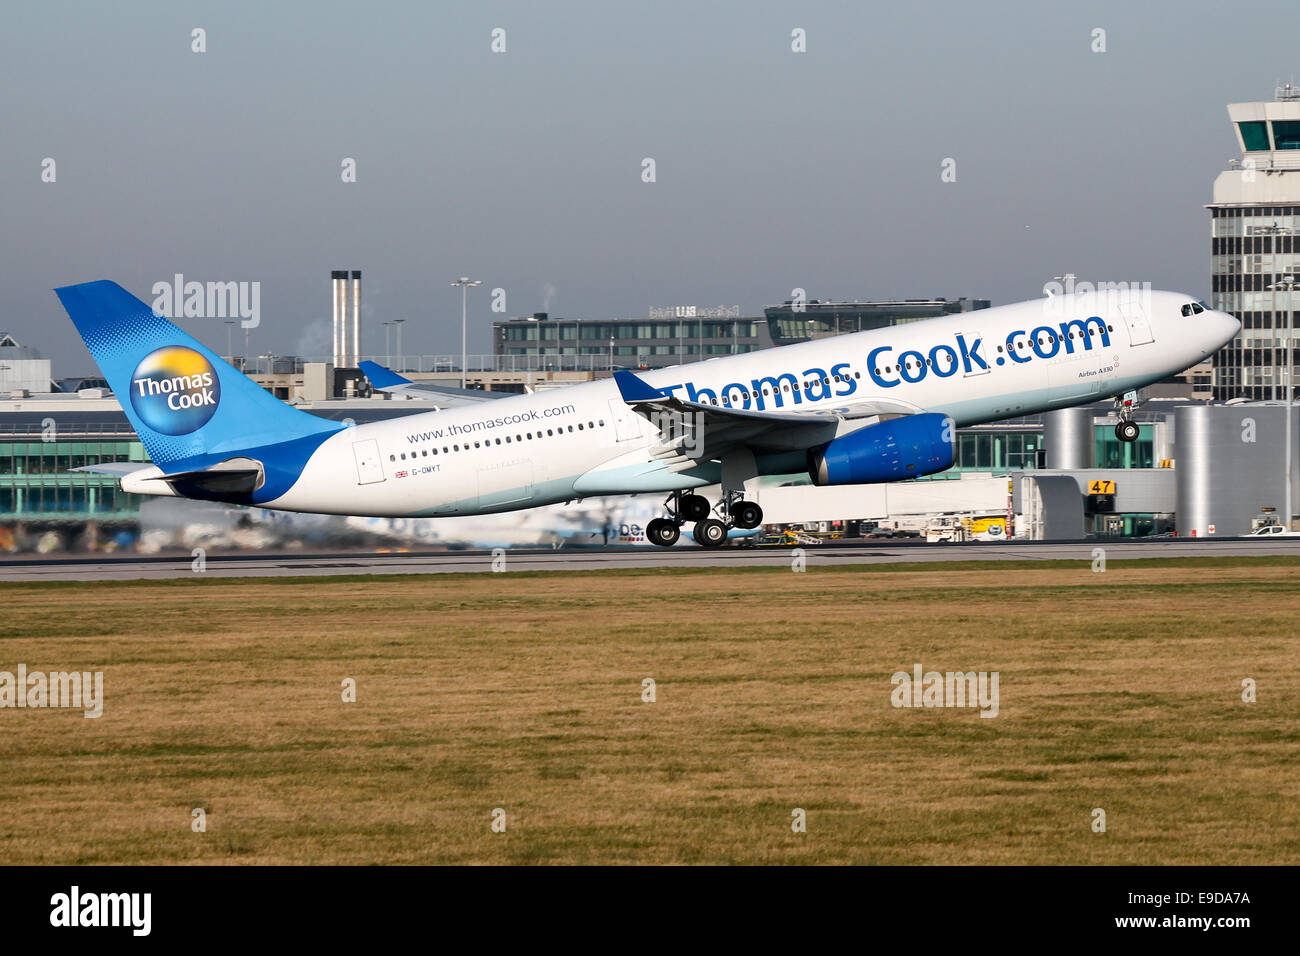 Thomas Cook Airbus A330-200 rotates from runway 05L at Manchester airport. - Stock Image